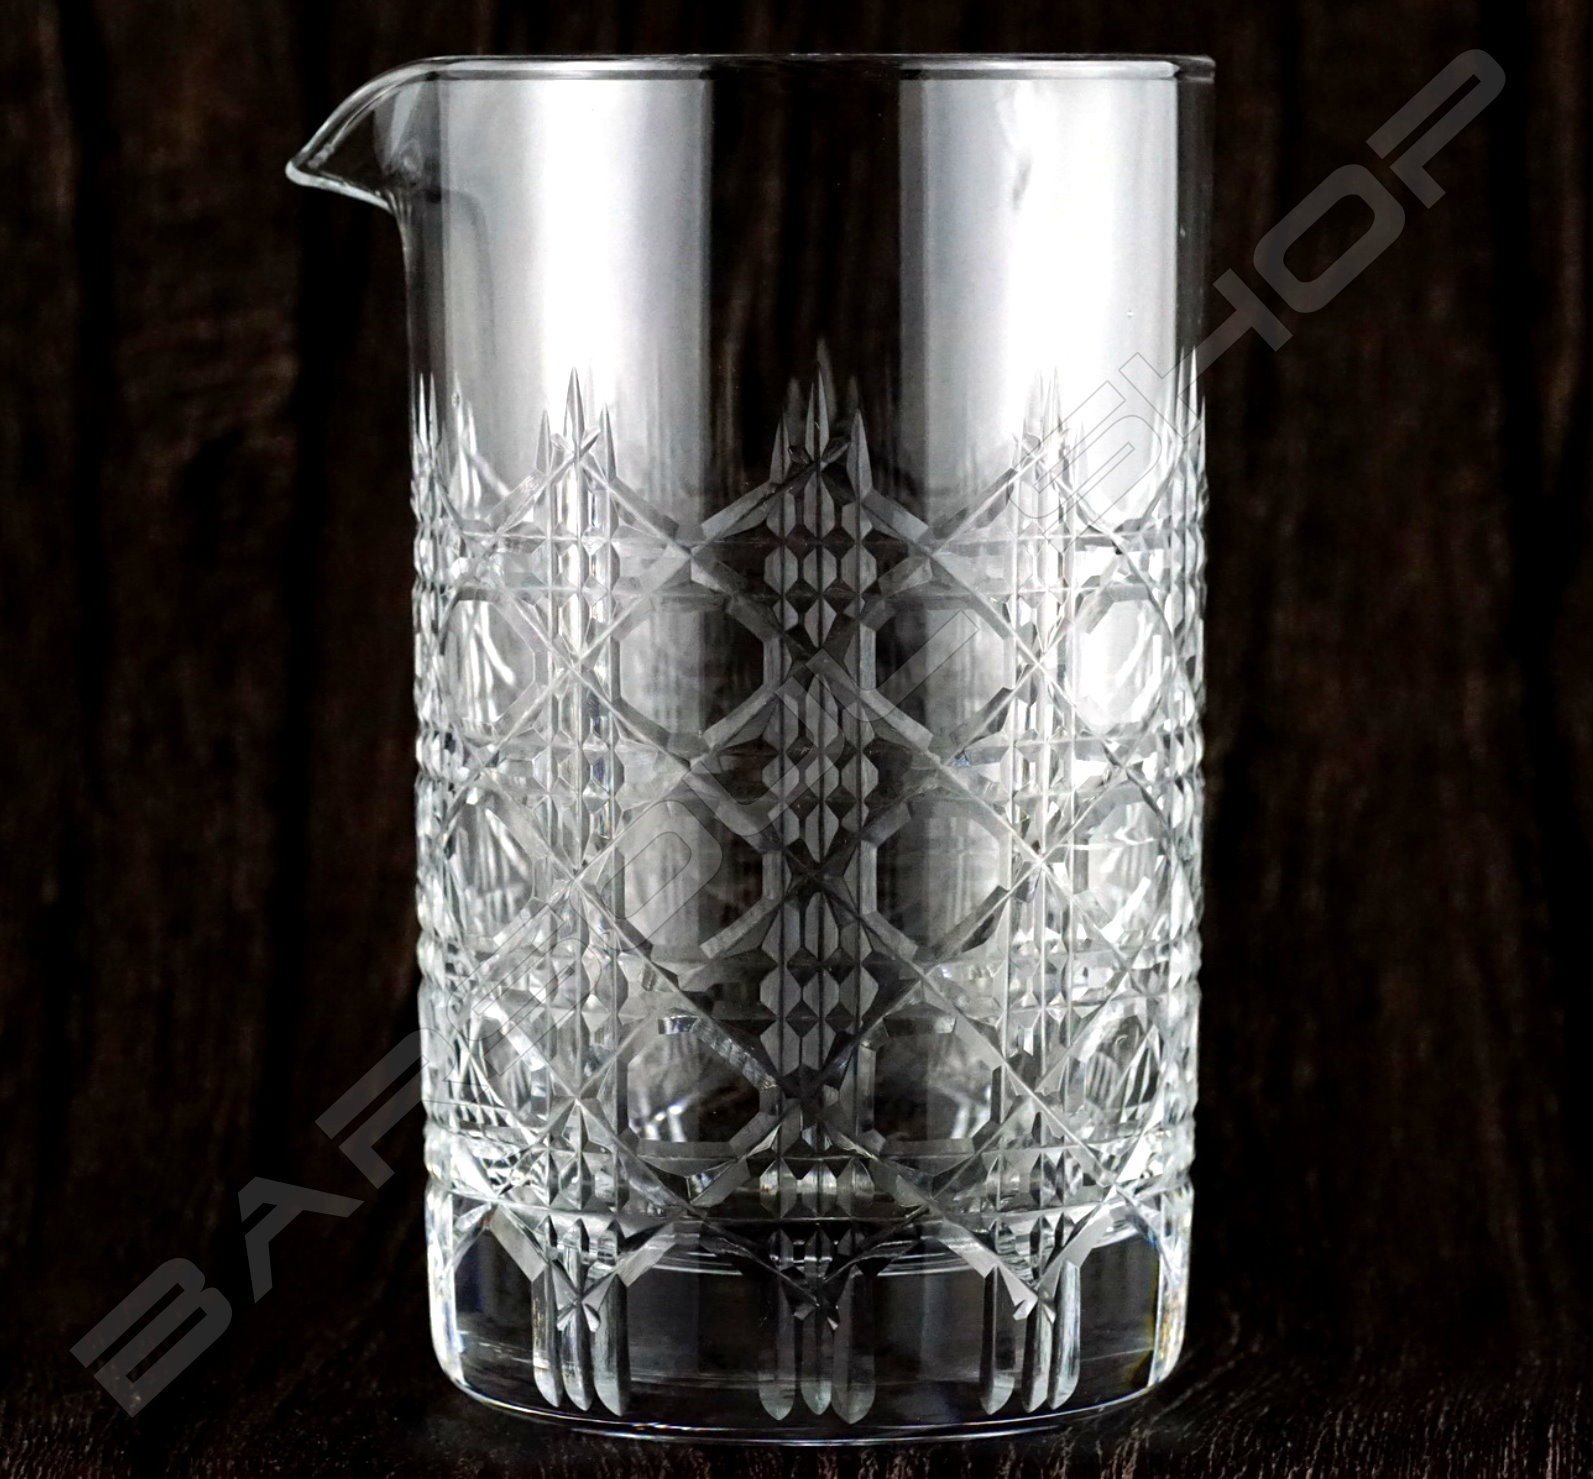 水晶攪拌杯 皇爵款 Crystal mixing glass (Royal knight) H15cm